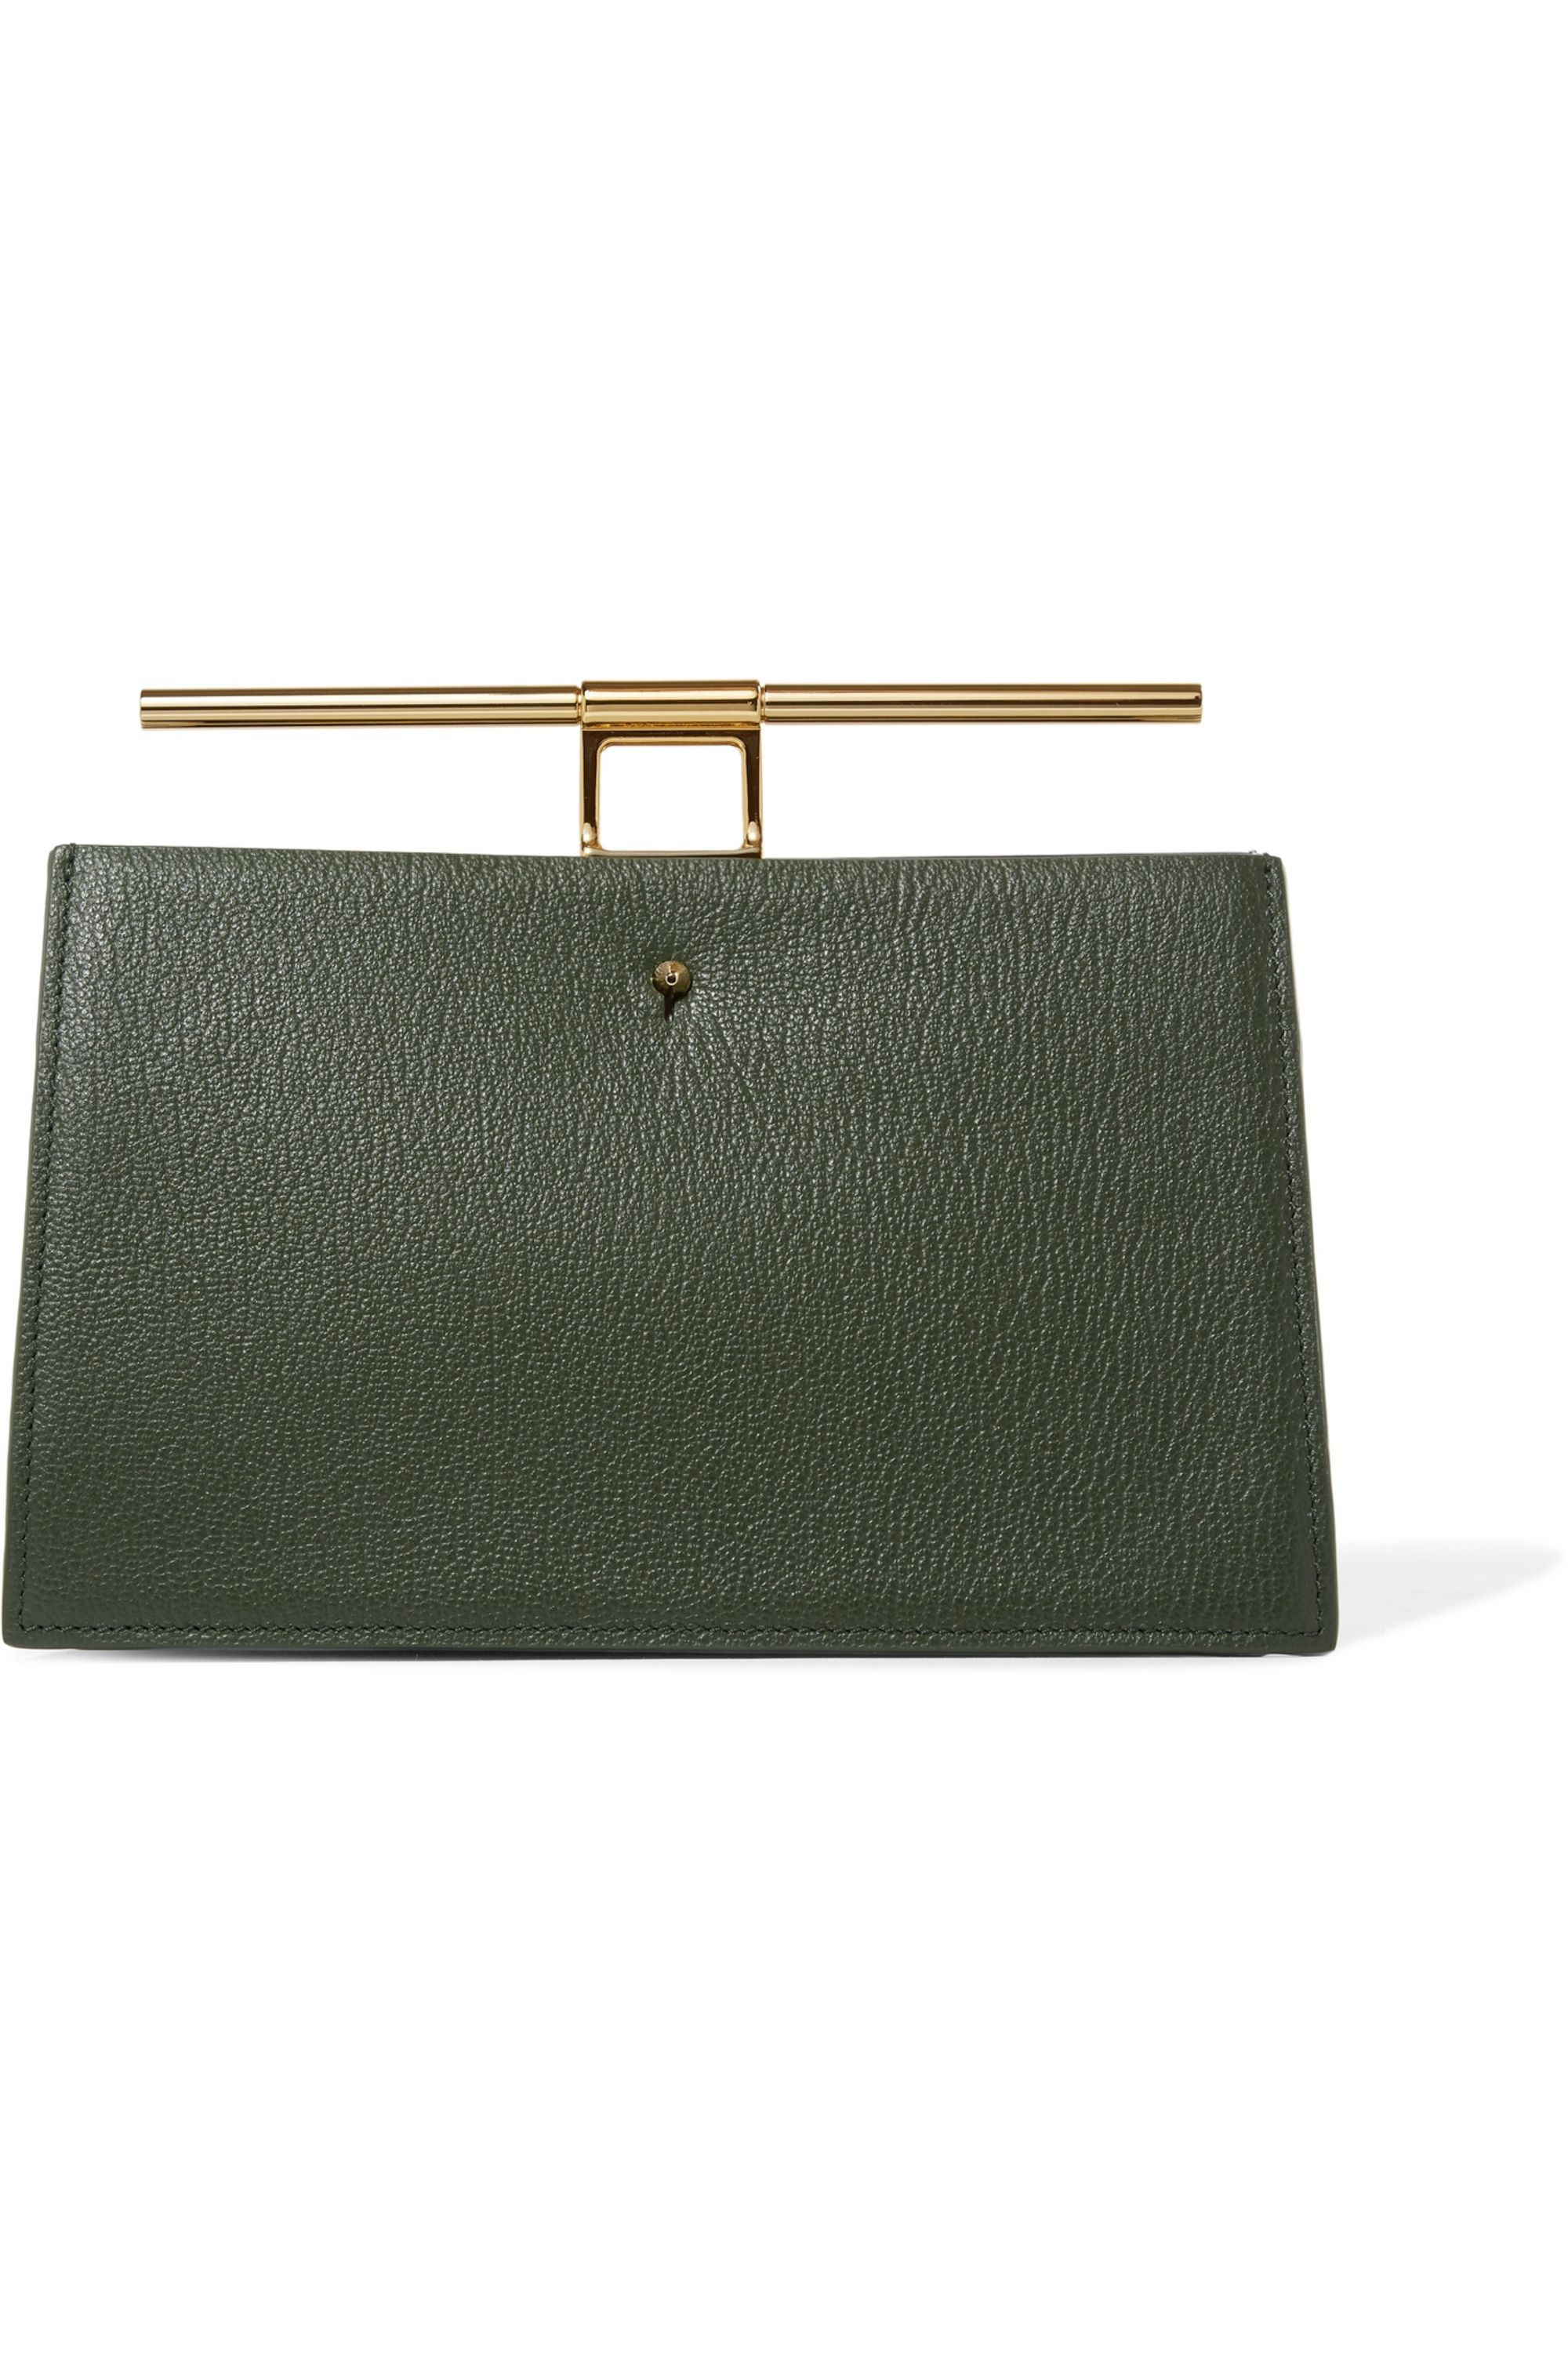 THE VOLON Chateau mini color-block textured-leather clutch